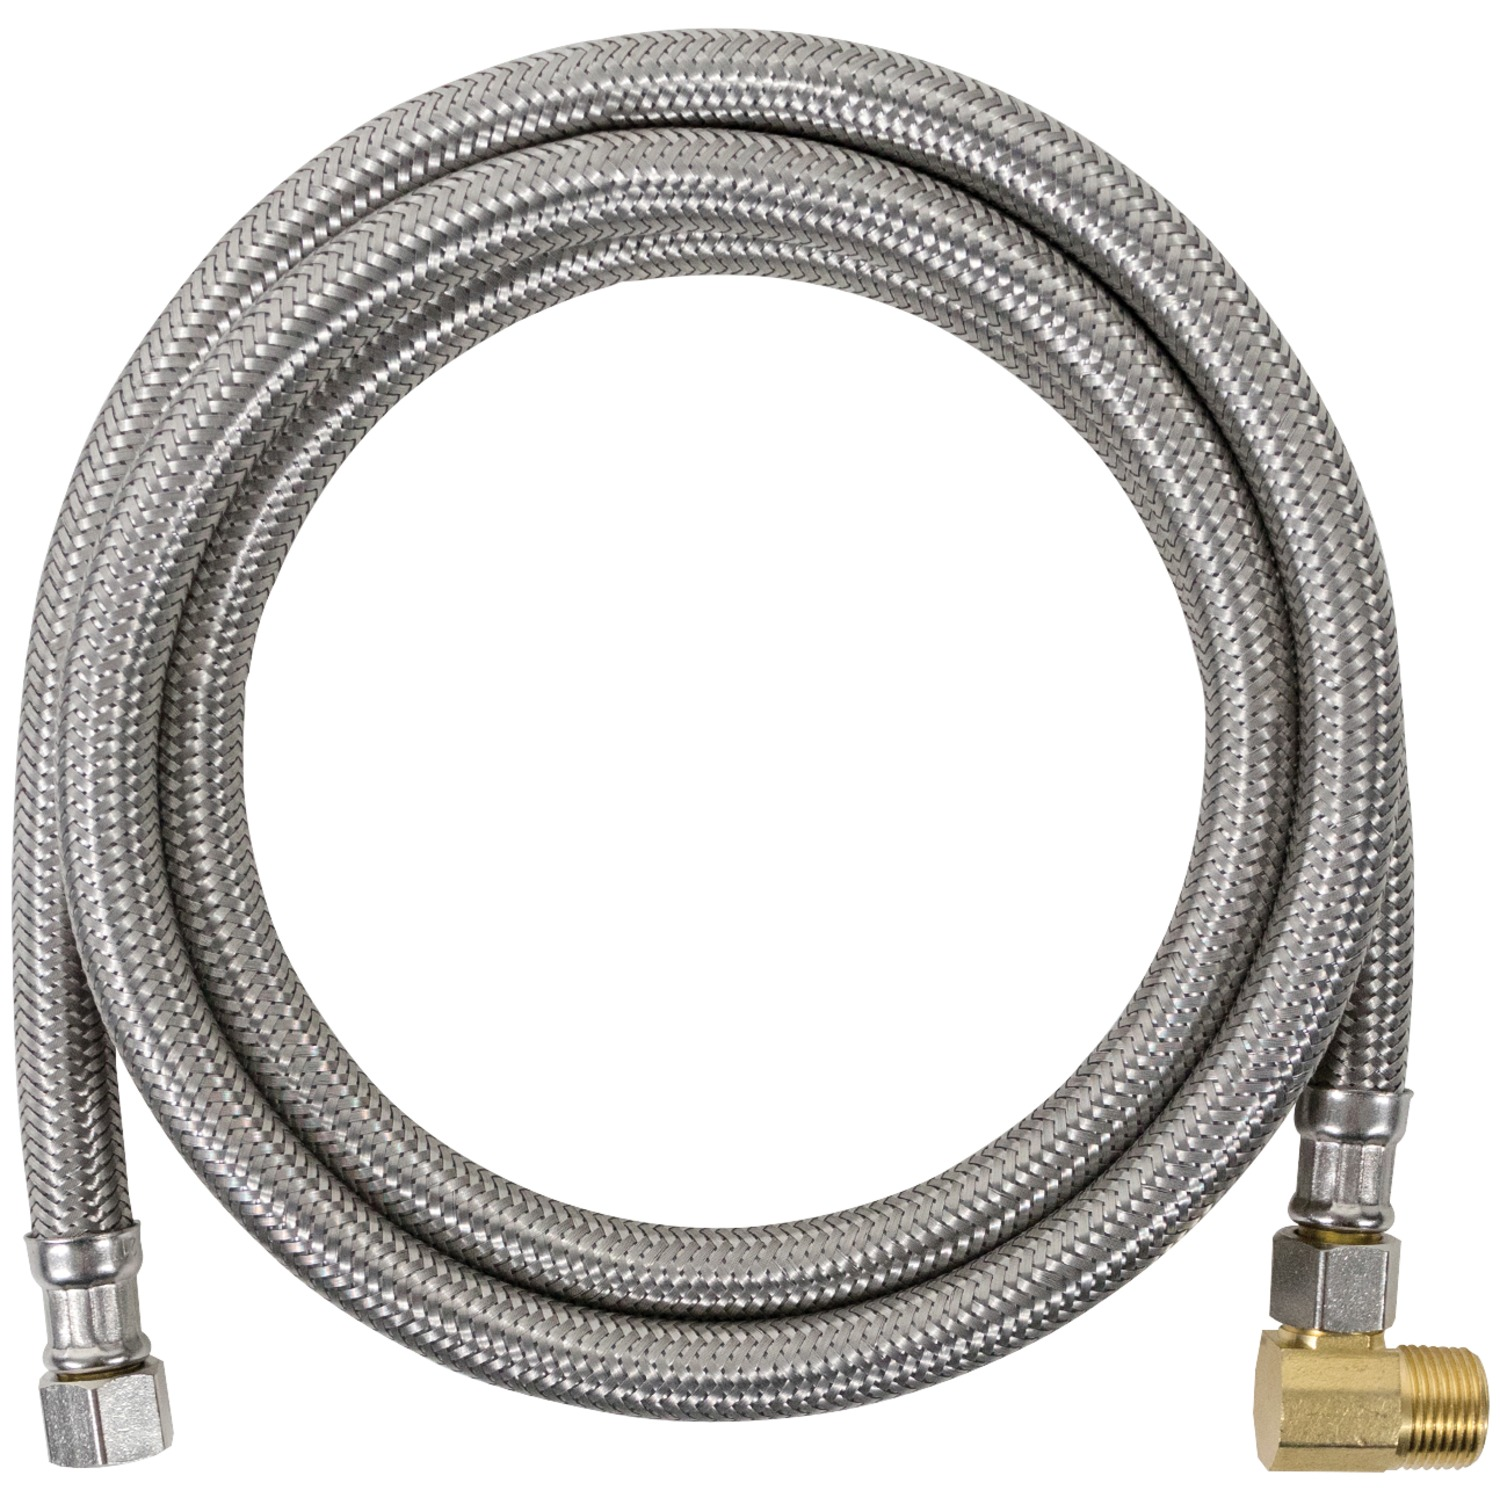 Certified Appliance Dw48ssbl Braided Stainless Steel Dishwasher Connector with Elbow, 4'